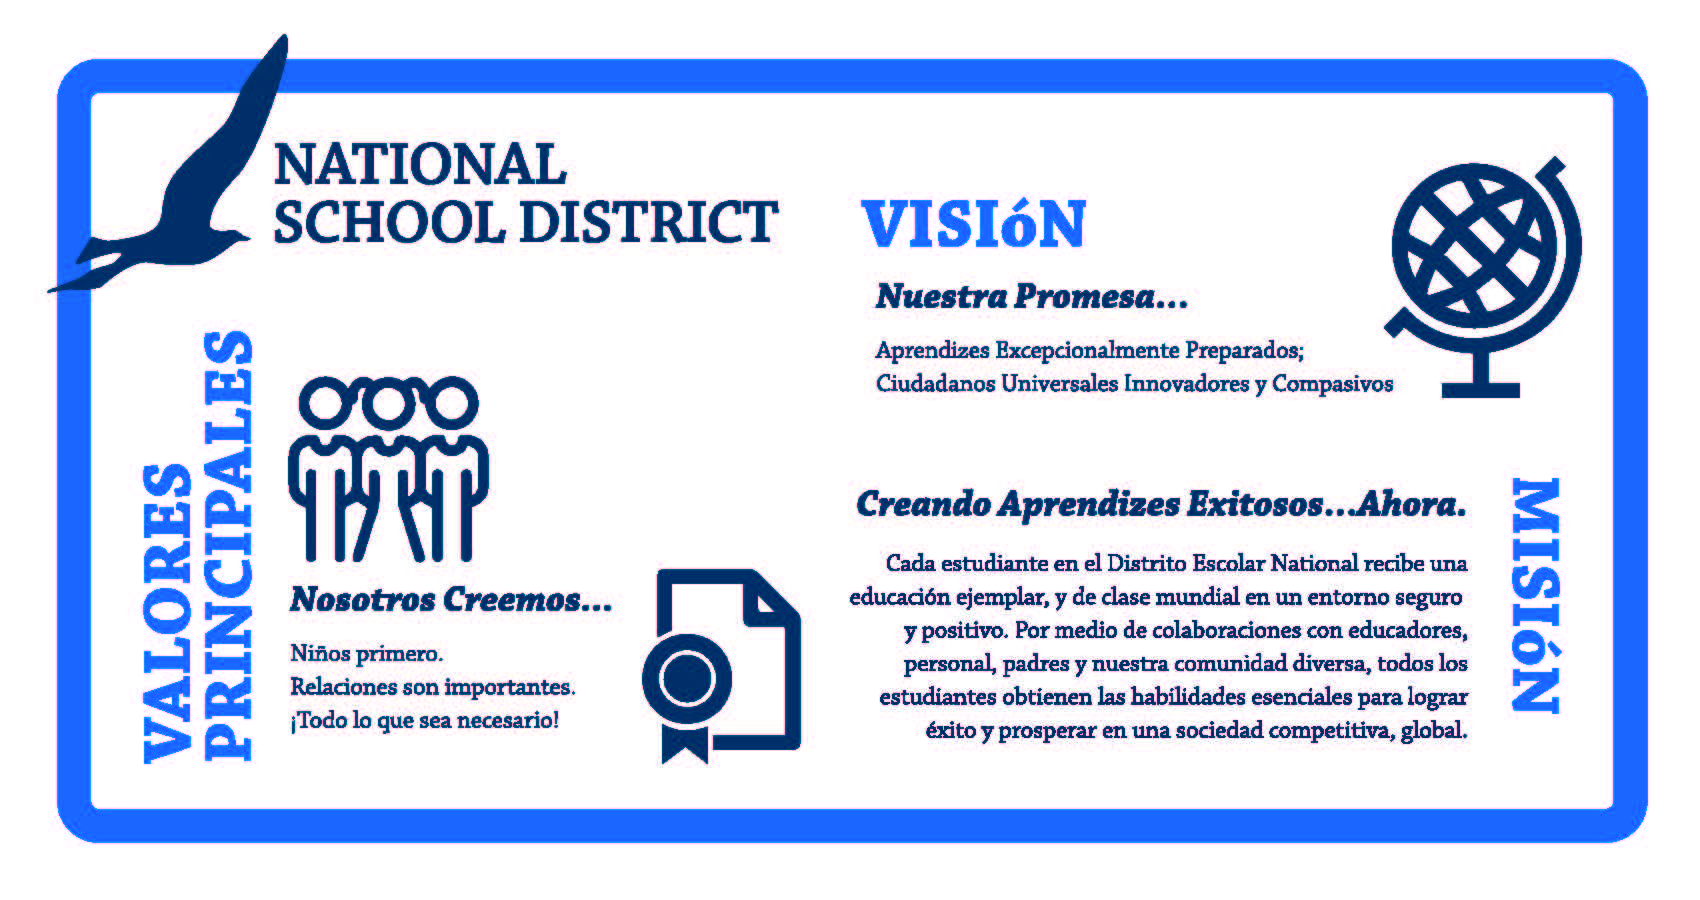 Mision, Vision y Valores Principales de National School District